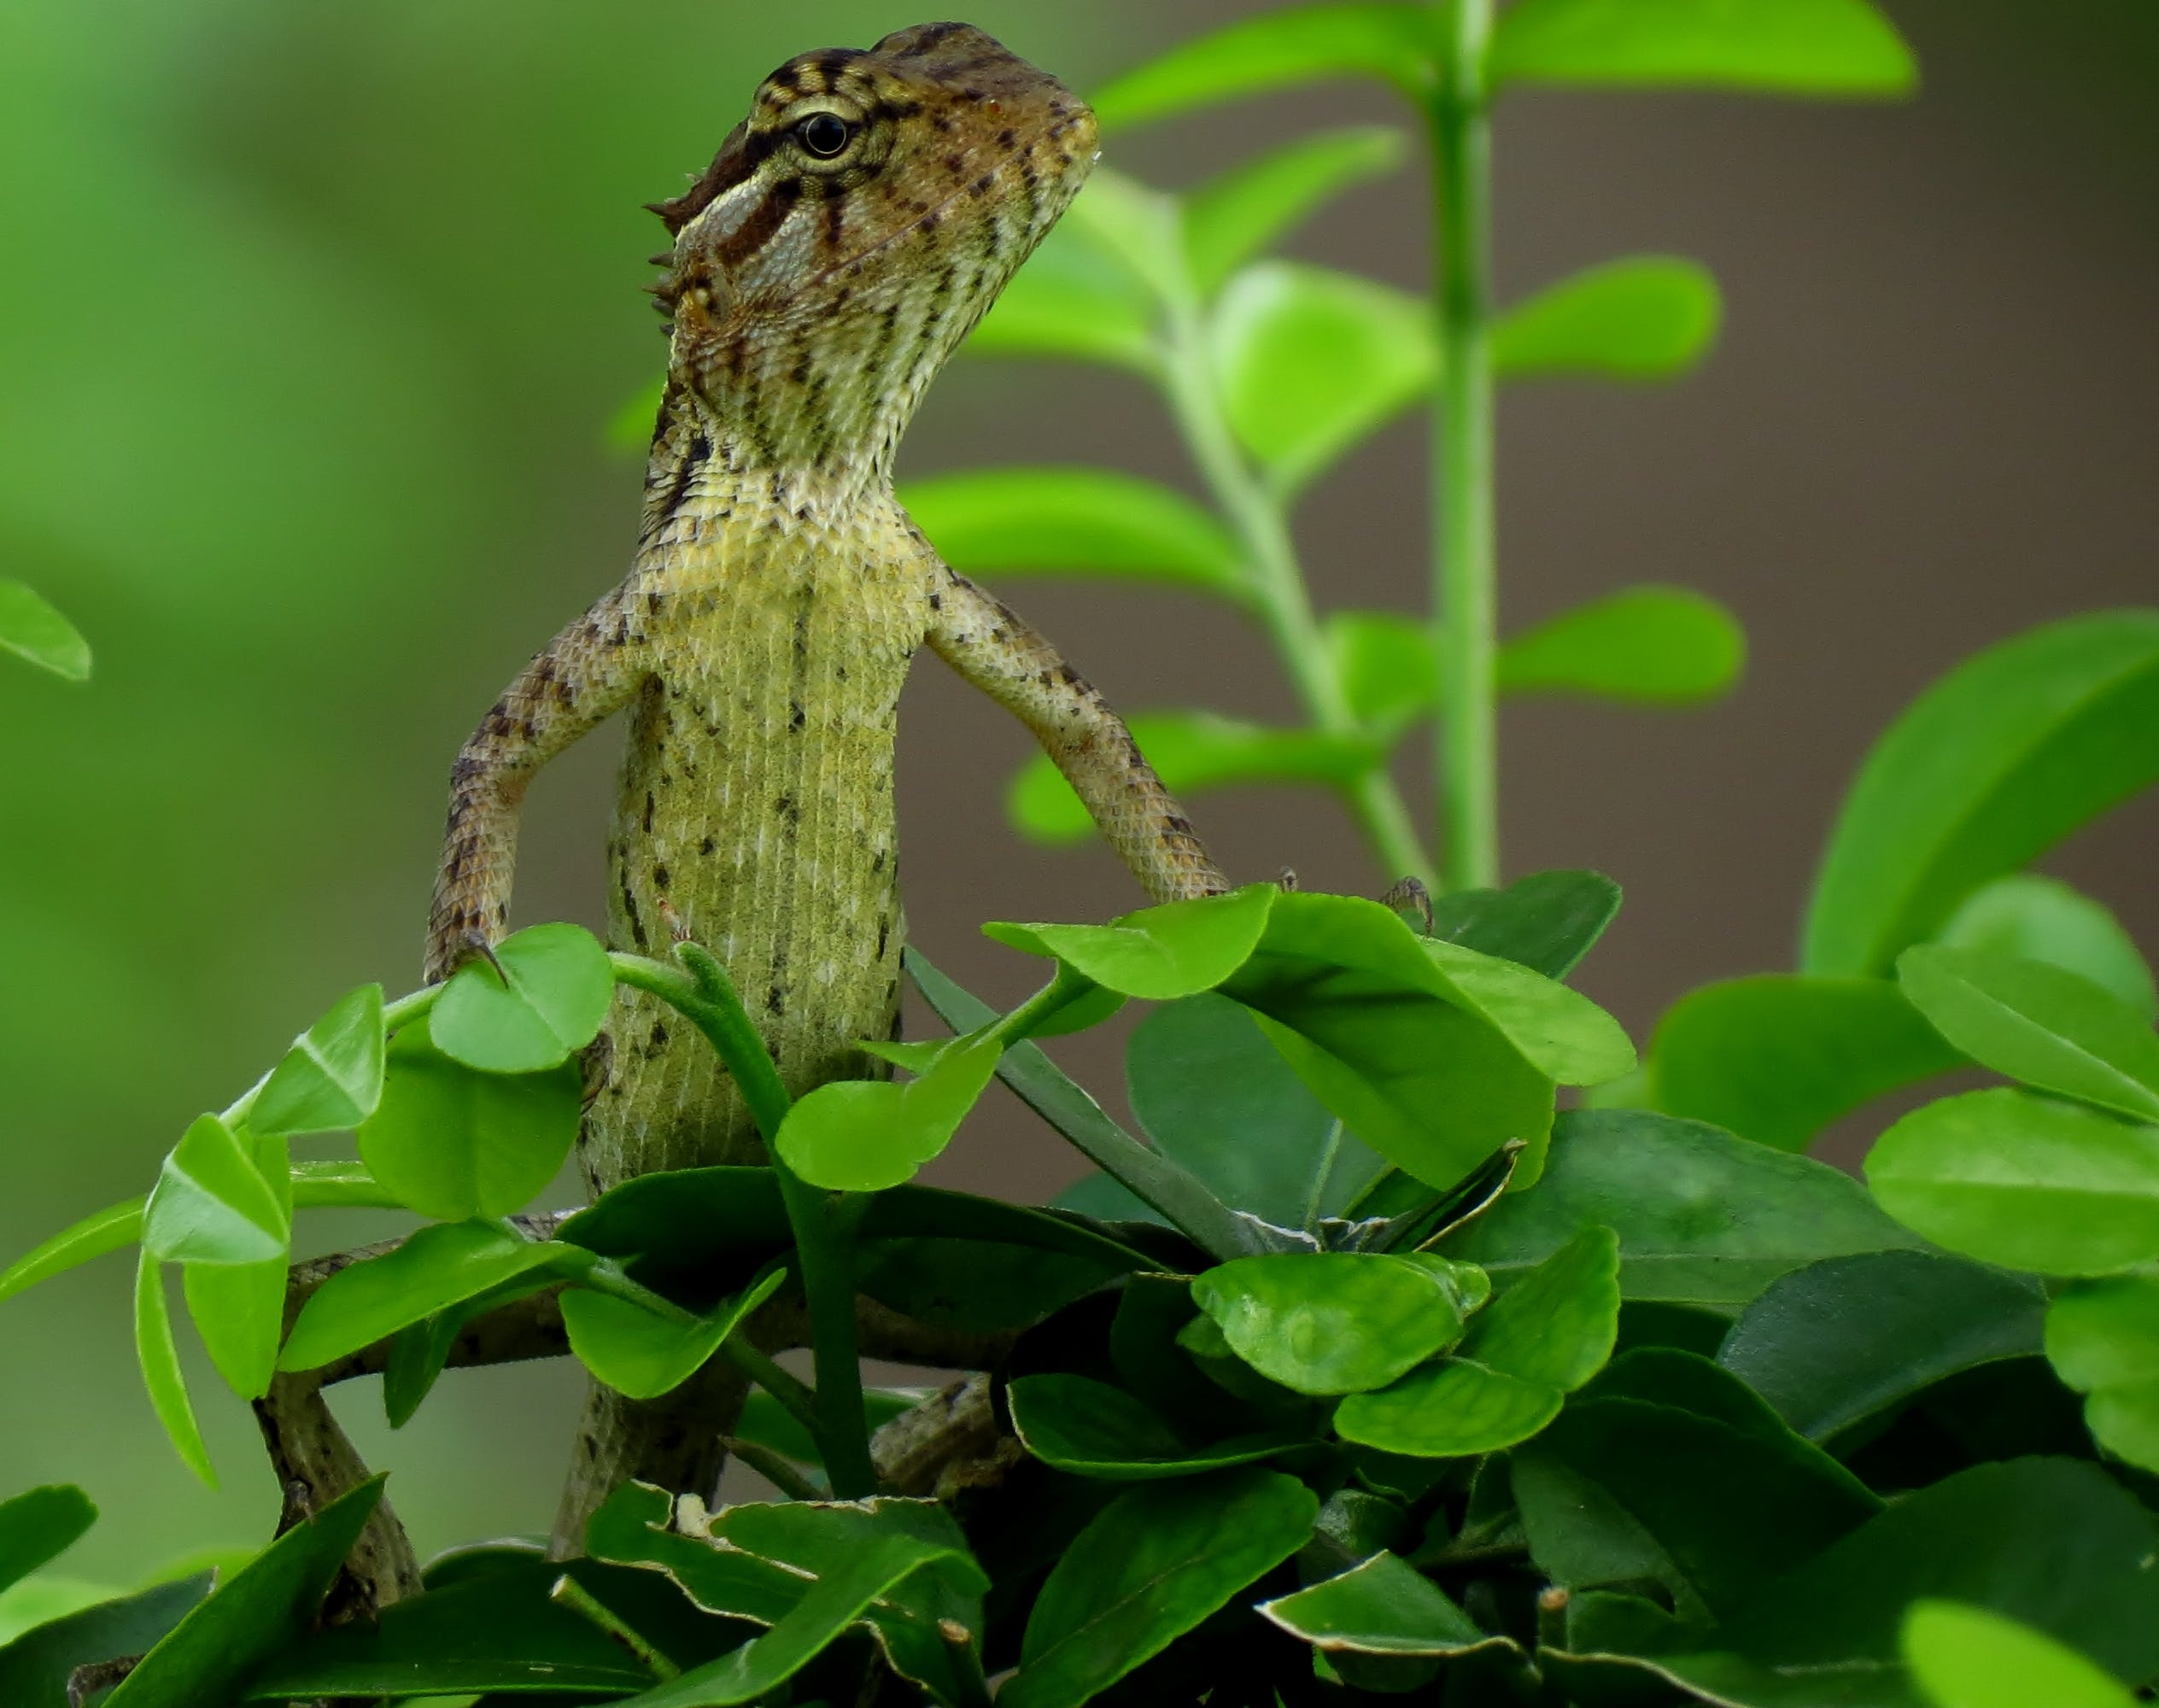 Close-up Photography of Gray Lizard Standing on Green Leafed Plant